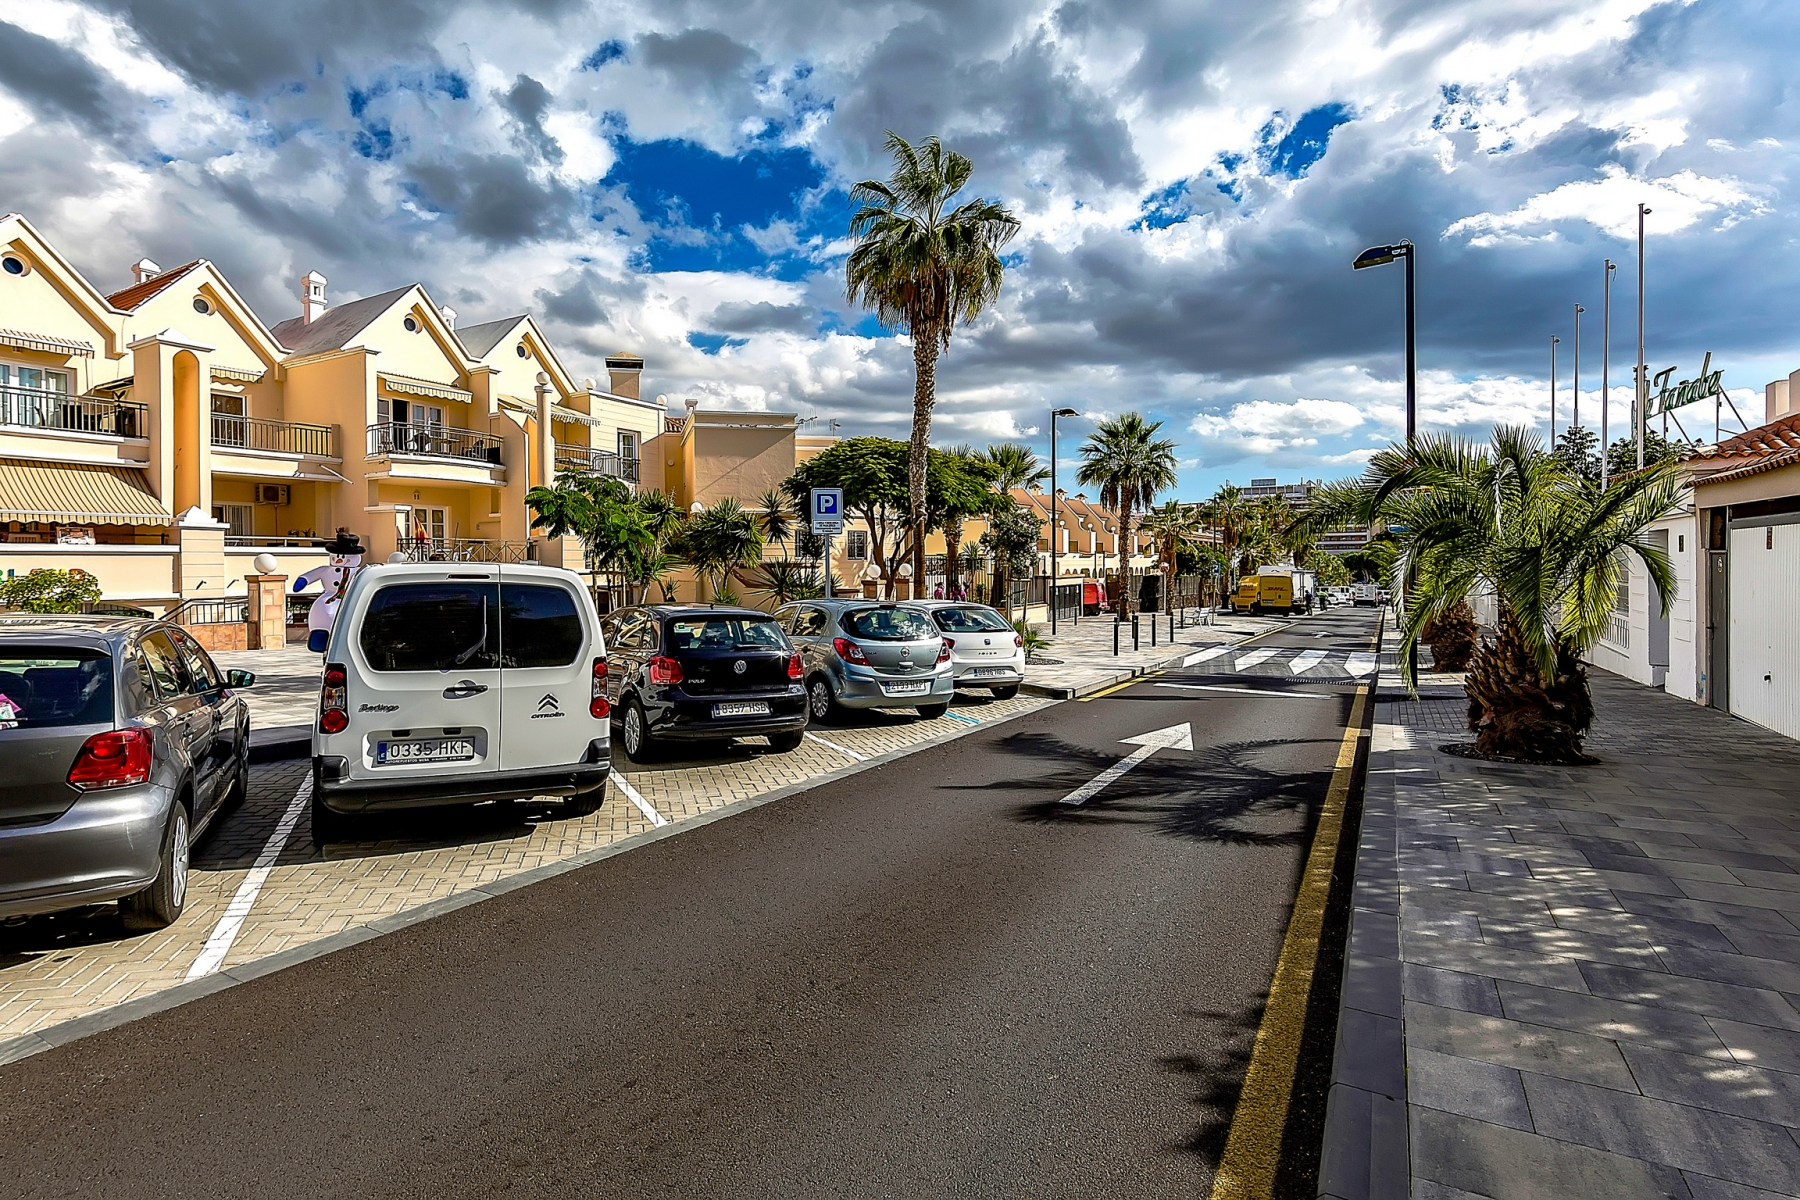 Properties for Sale in Tenerife, Canary Islands, Spain | SylkWayStar Real Estate. 1 bedroom apartment Yucca Park. Image-22603